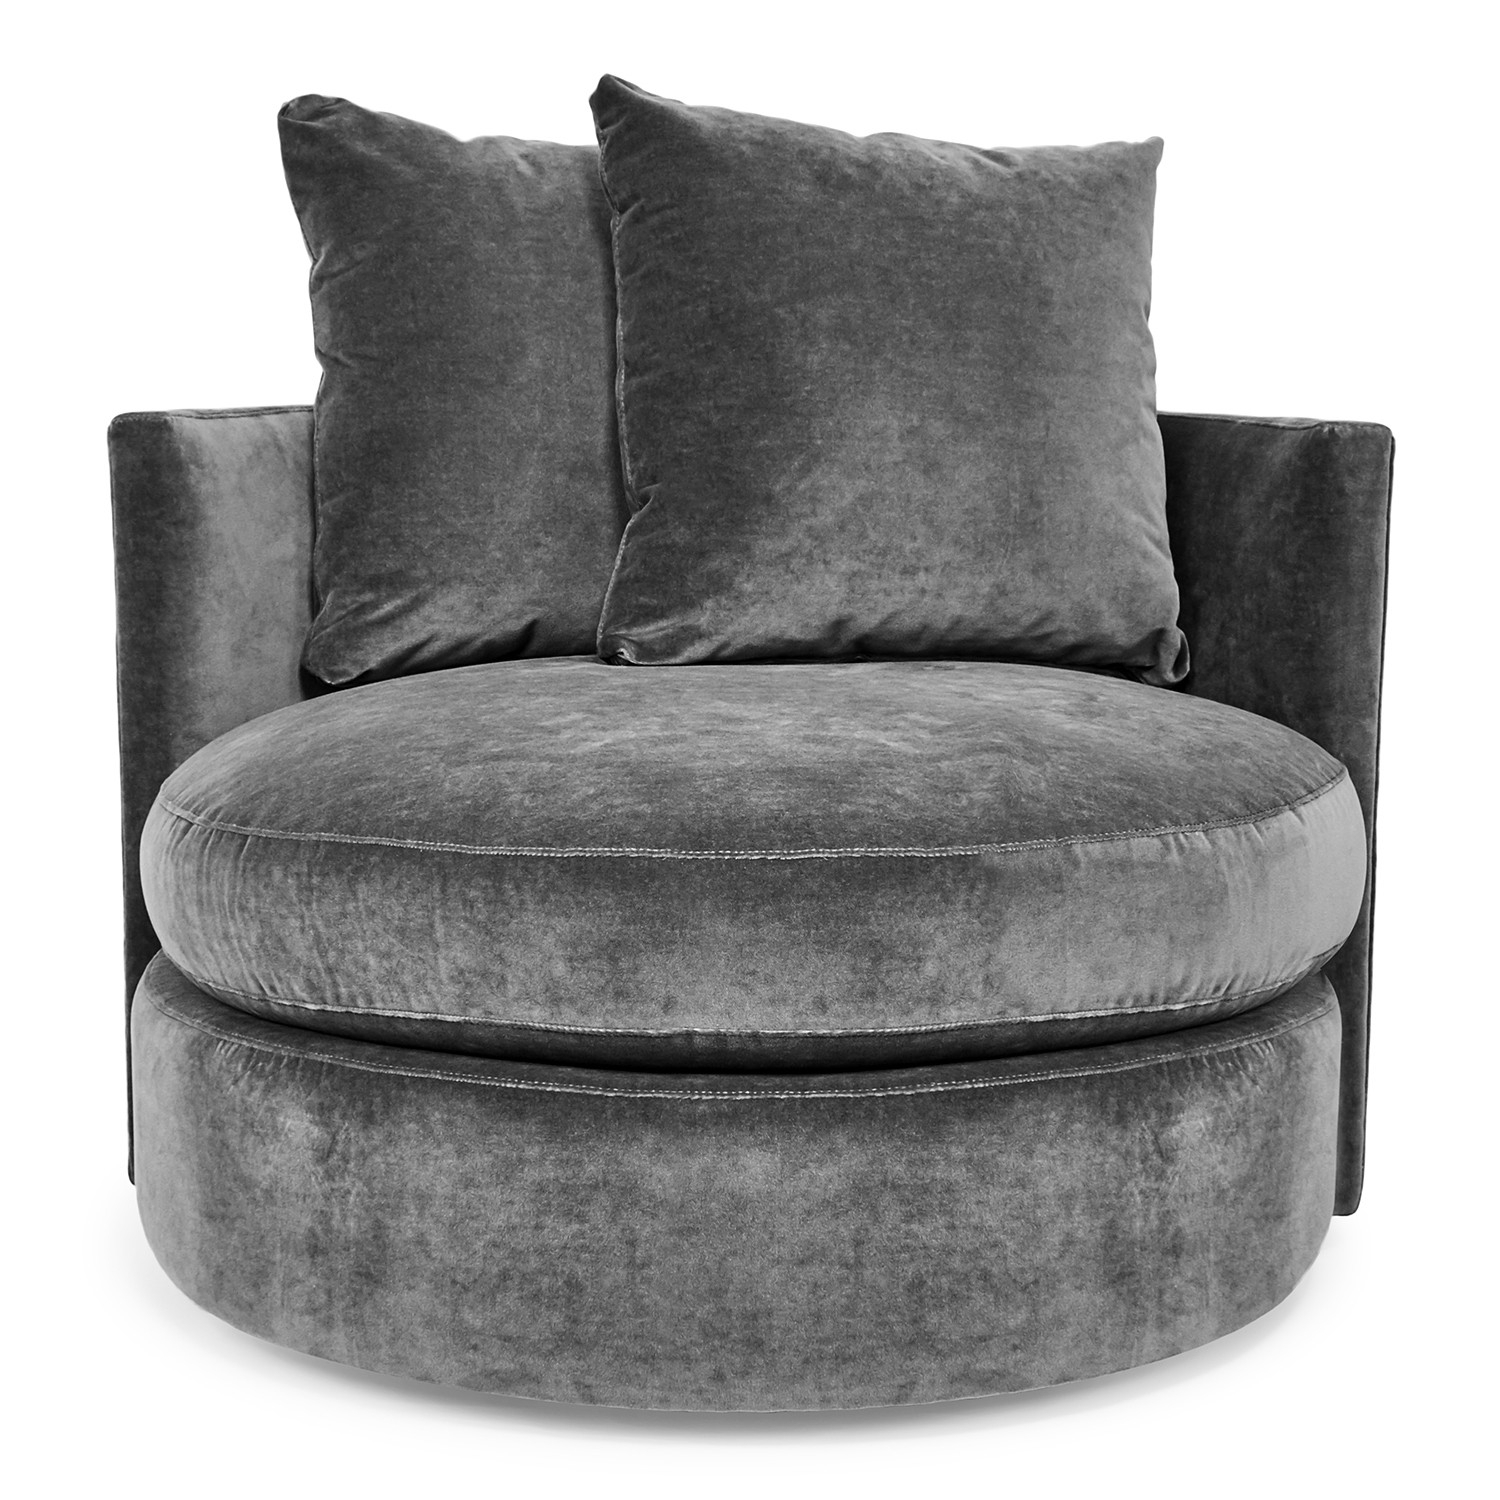 Swivel Accent Chairs At Abc Home & Carpet Intended For Umber Grey Swivel Accent Chairs (View 18 of 25)